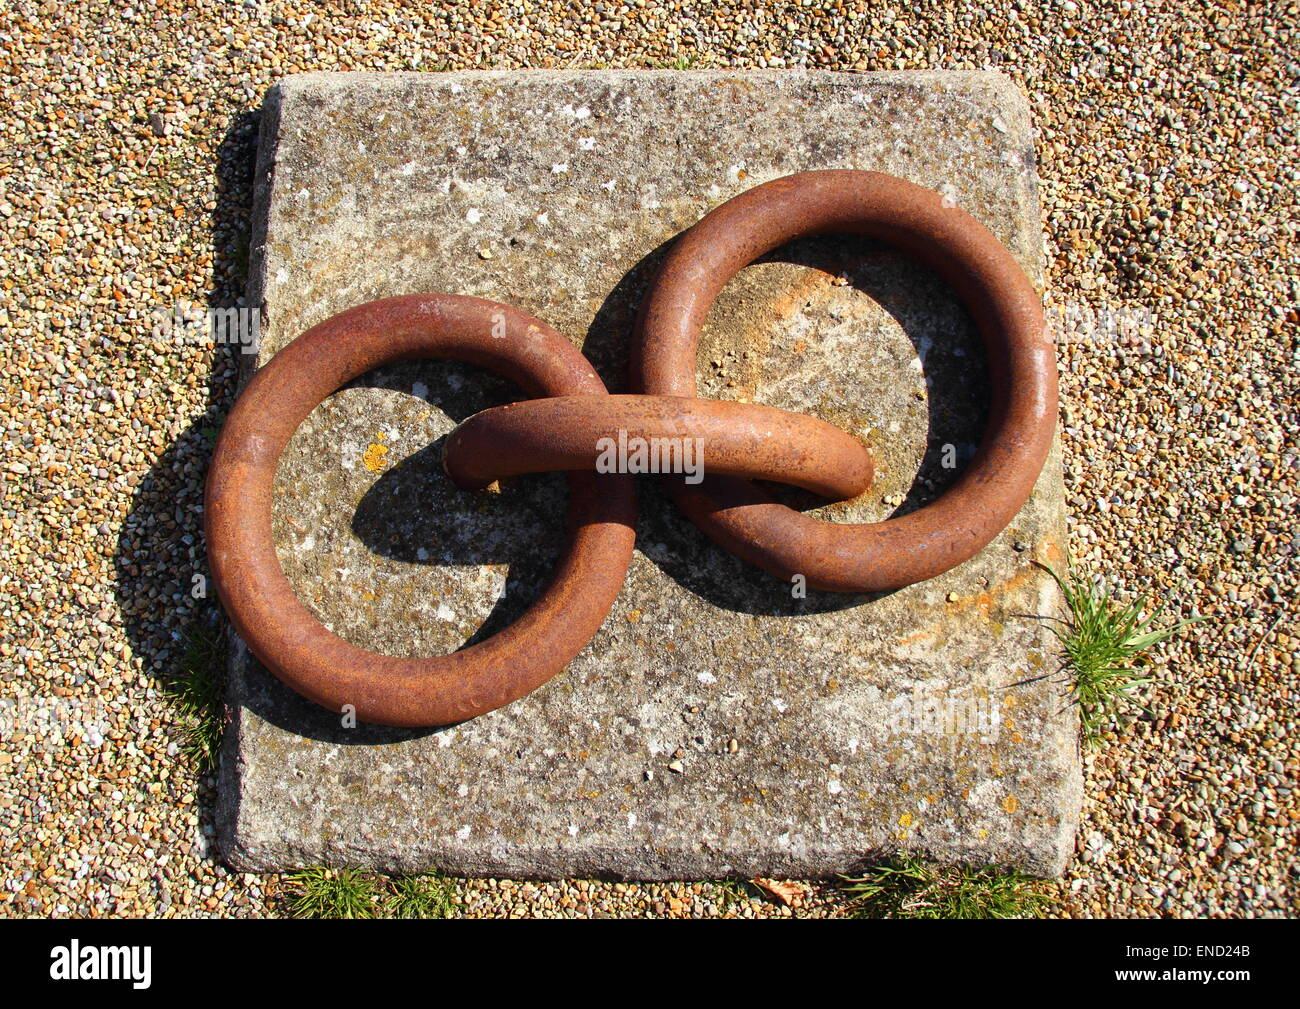 photos rusty rings stock images rust alamy photo image